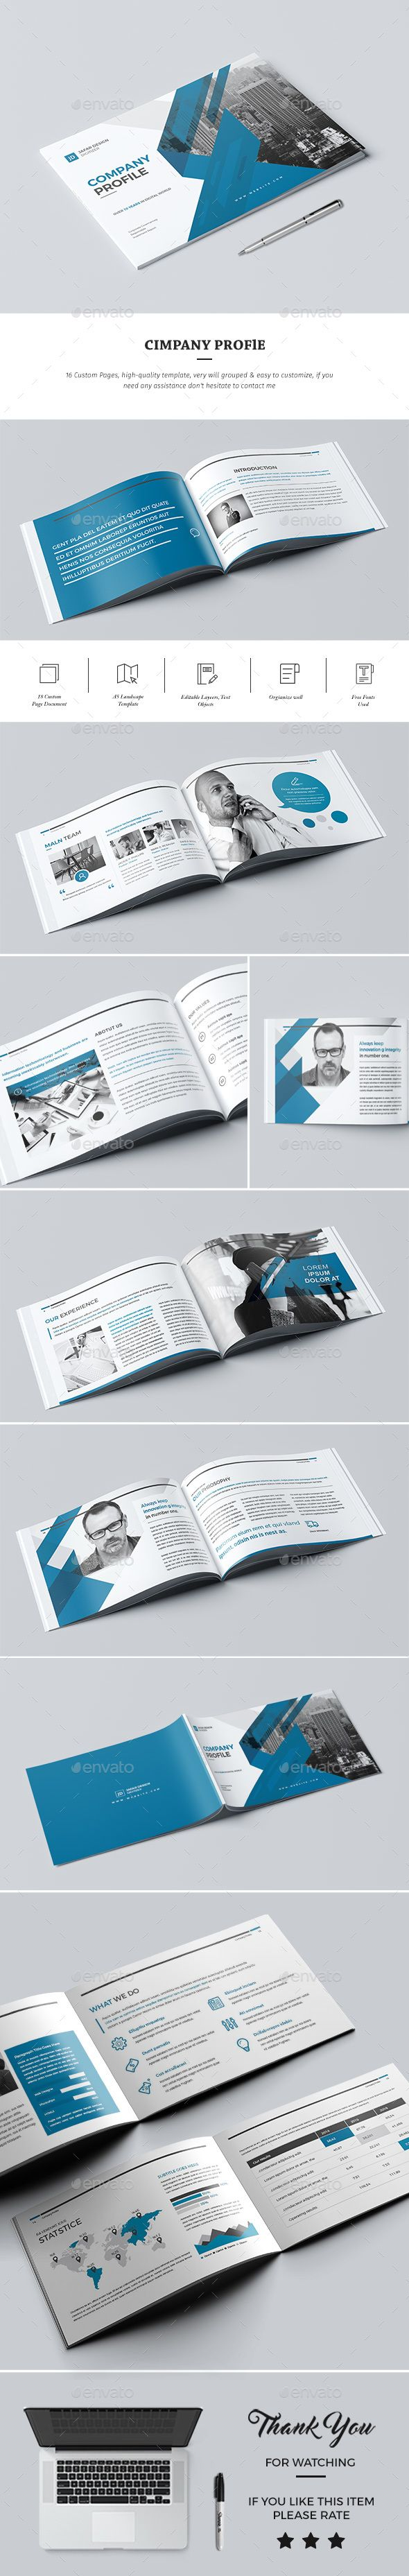 #Company #Profile #Template 2017 - #Corporate #Brochure #Design. Download here: https://graphicriver.net/item/company-profile-2017/19748458?ref=yinkira